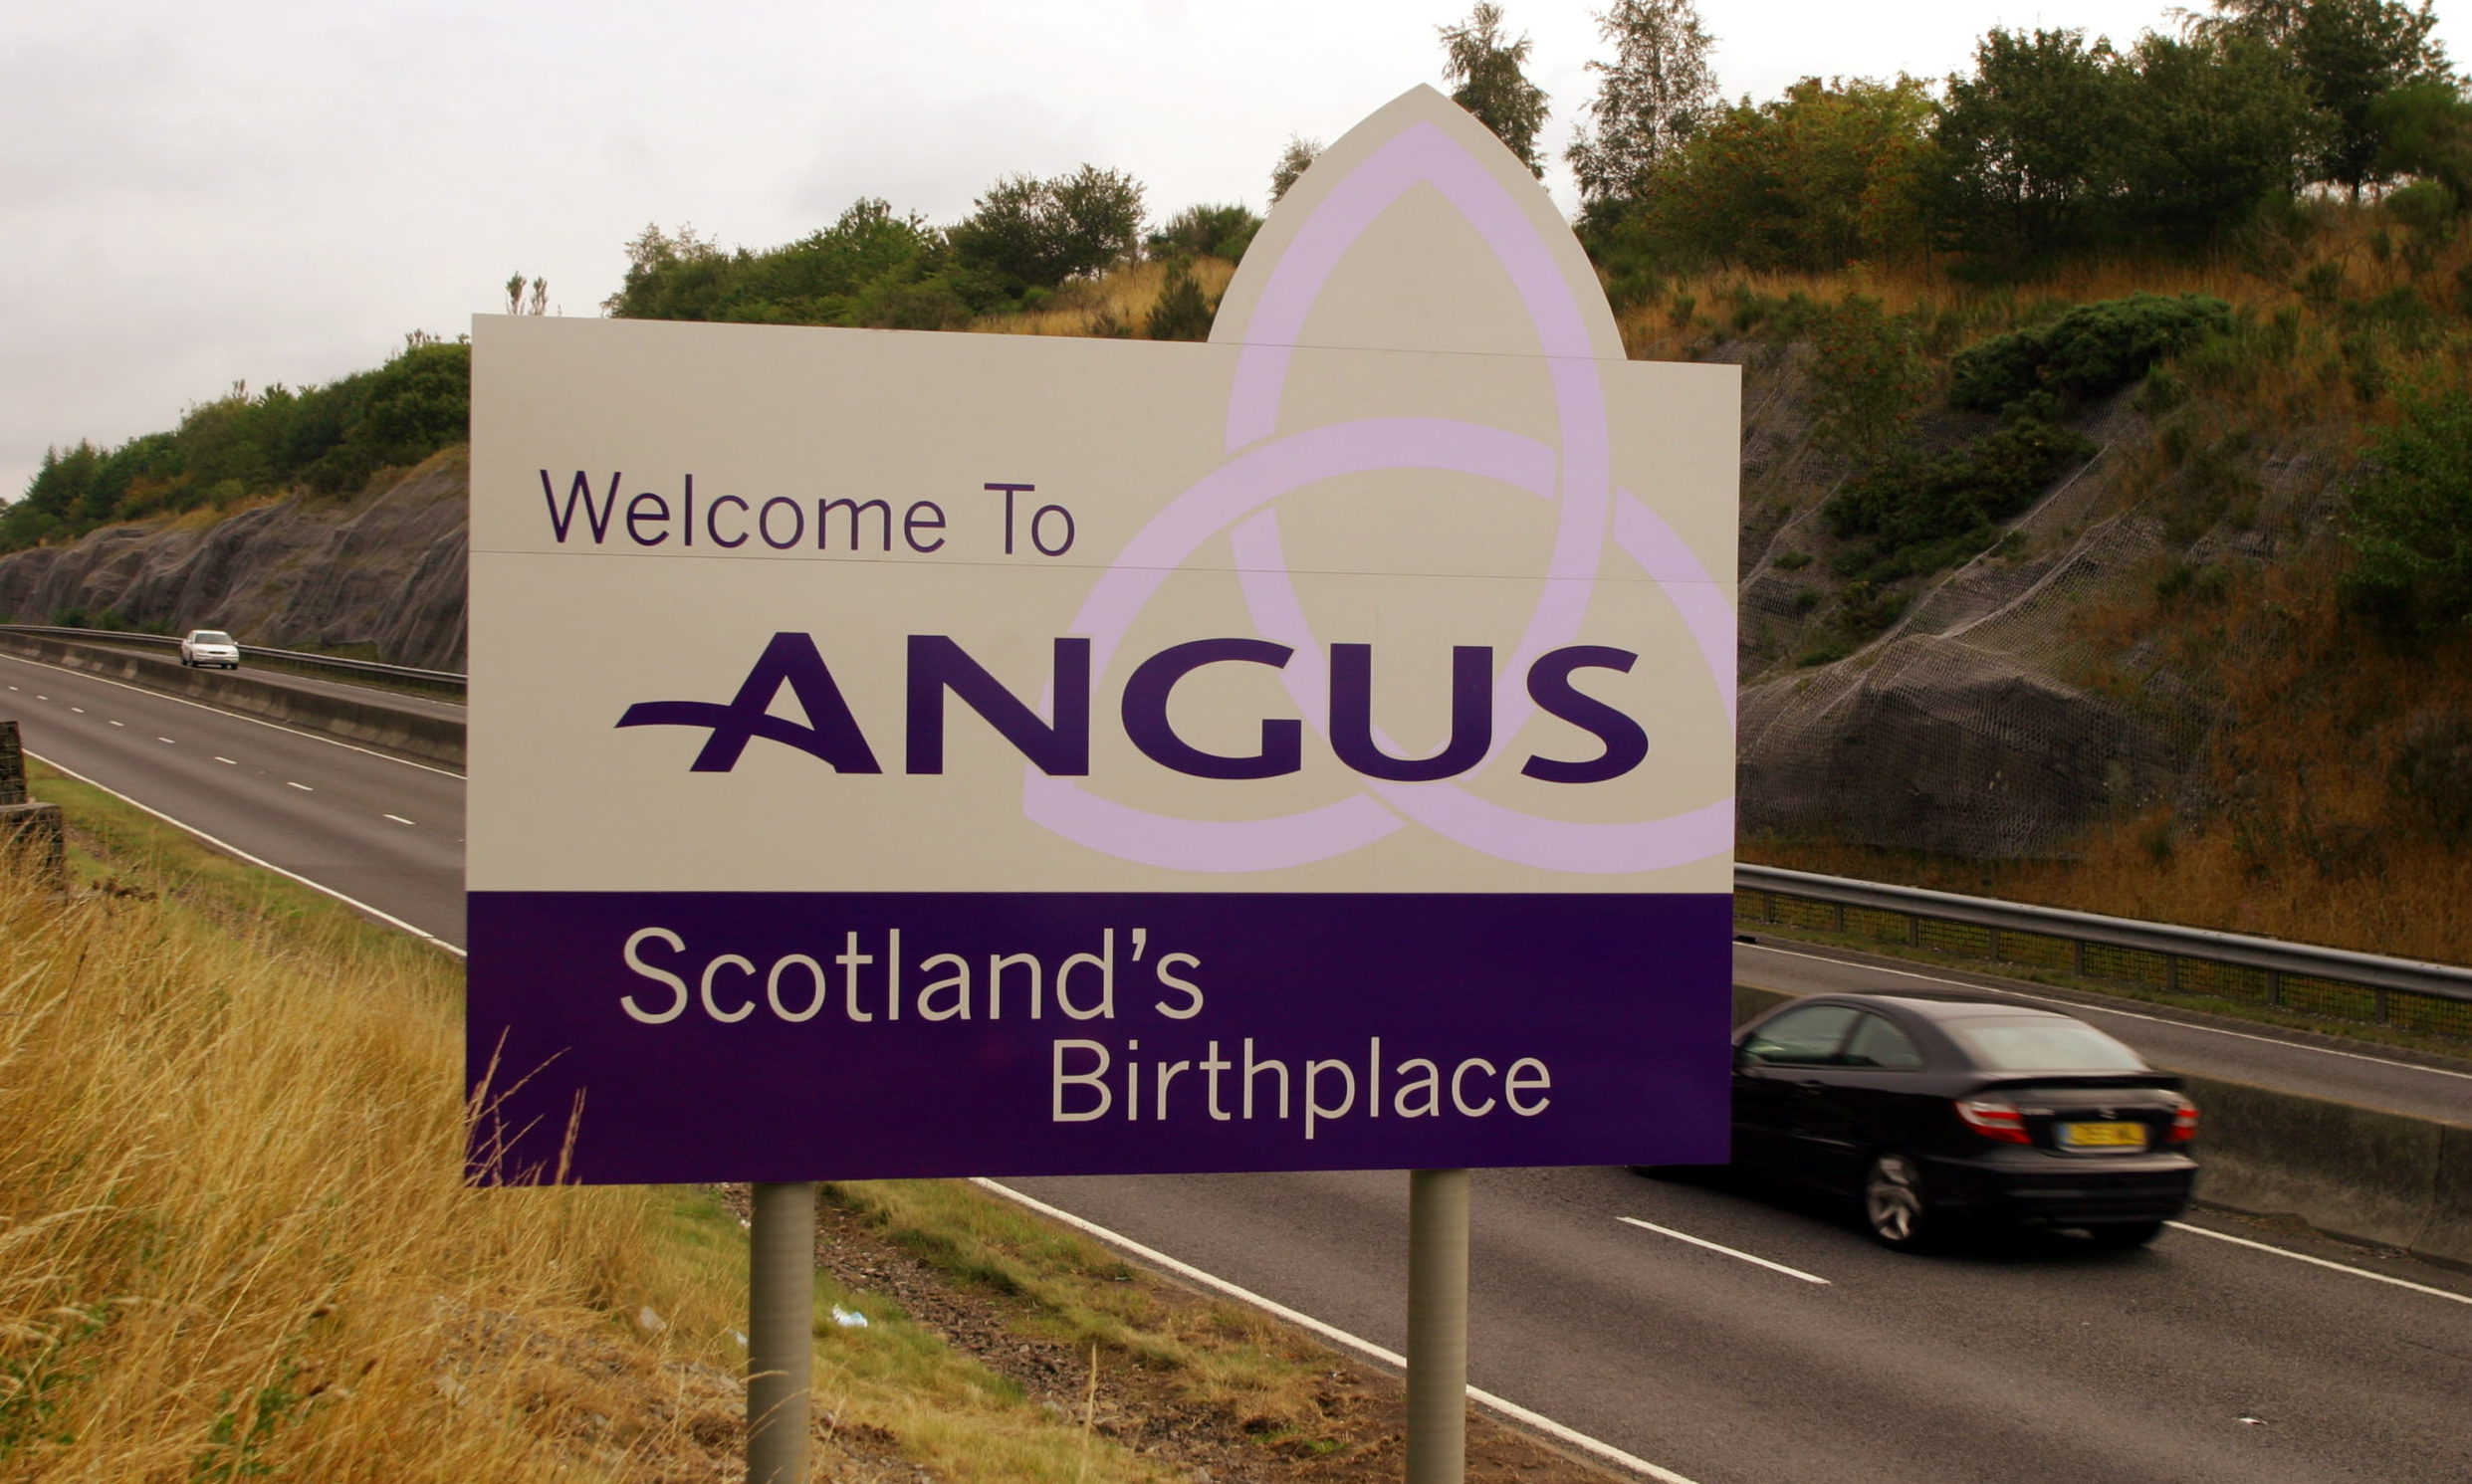 Only official signs will be permitted beside the A90 and A92 through Angus.